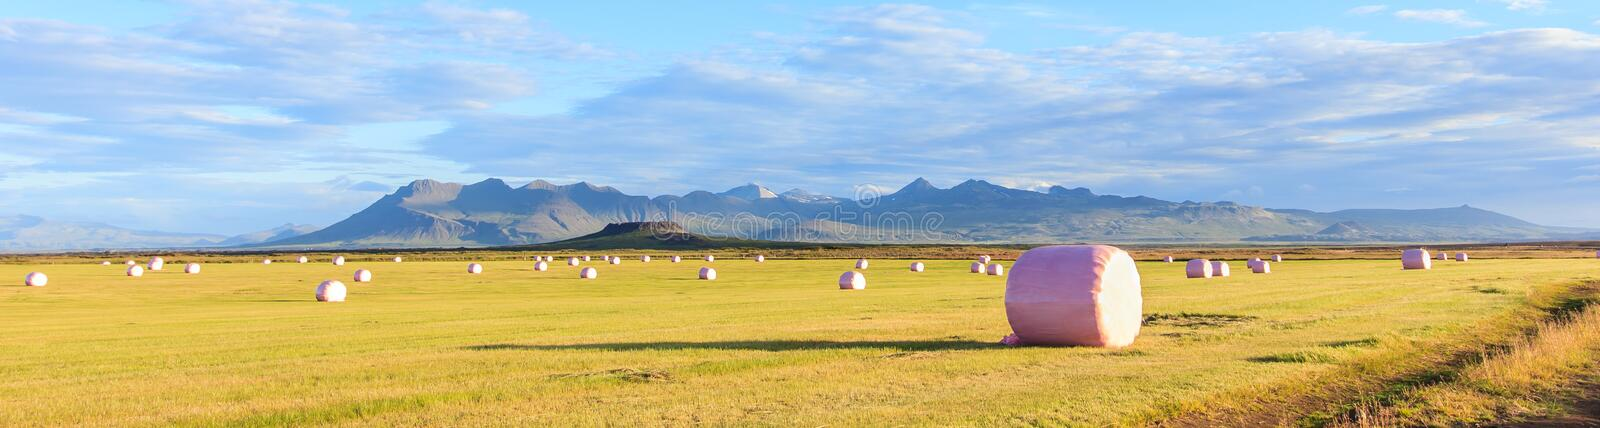 Dry hay bale in pink plastic film to stock for winter season with colorful mountains as a background royalty free stock photo